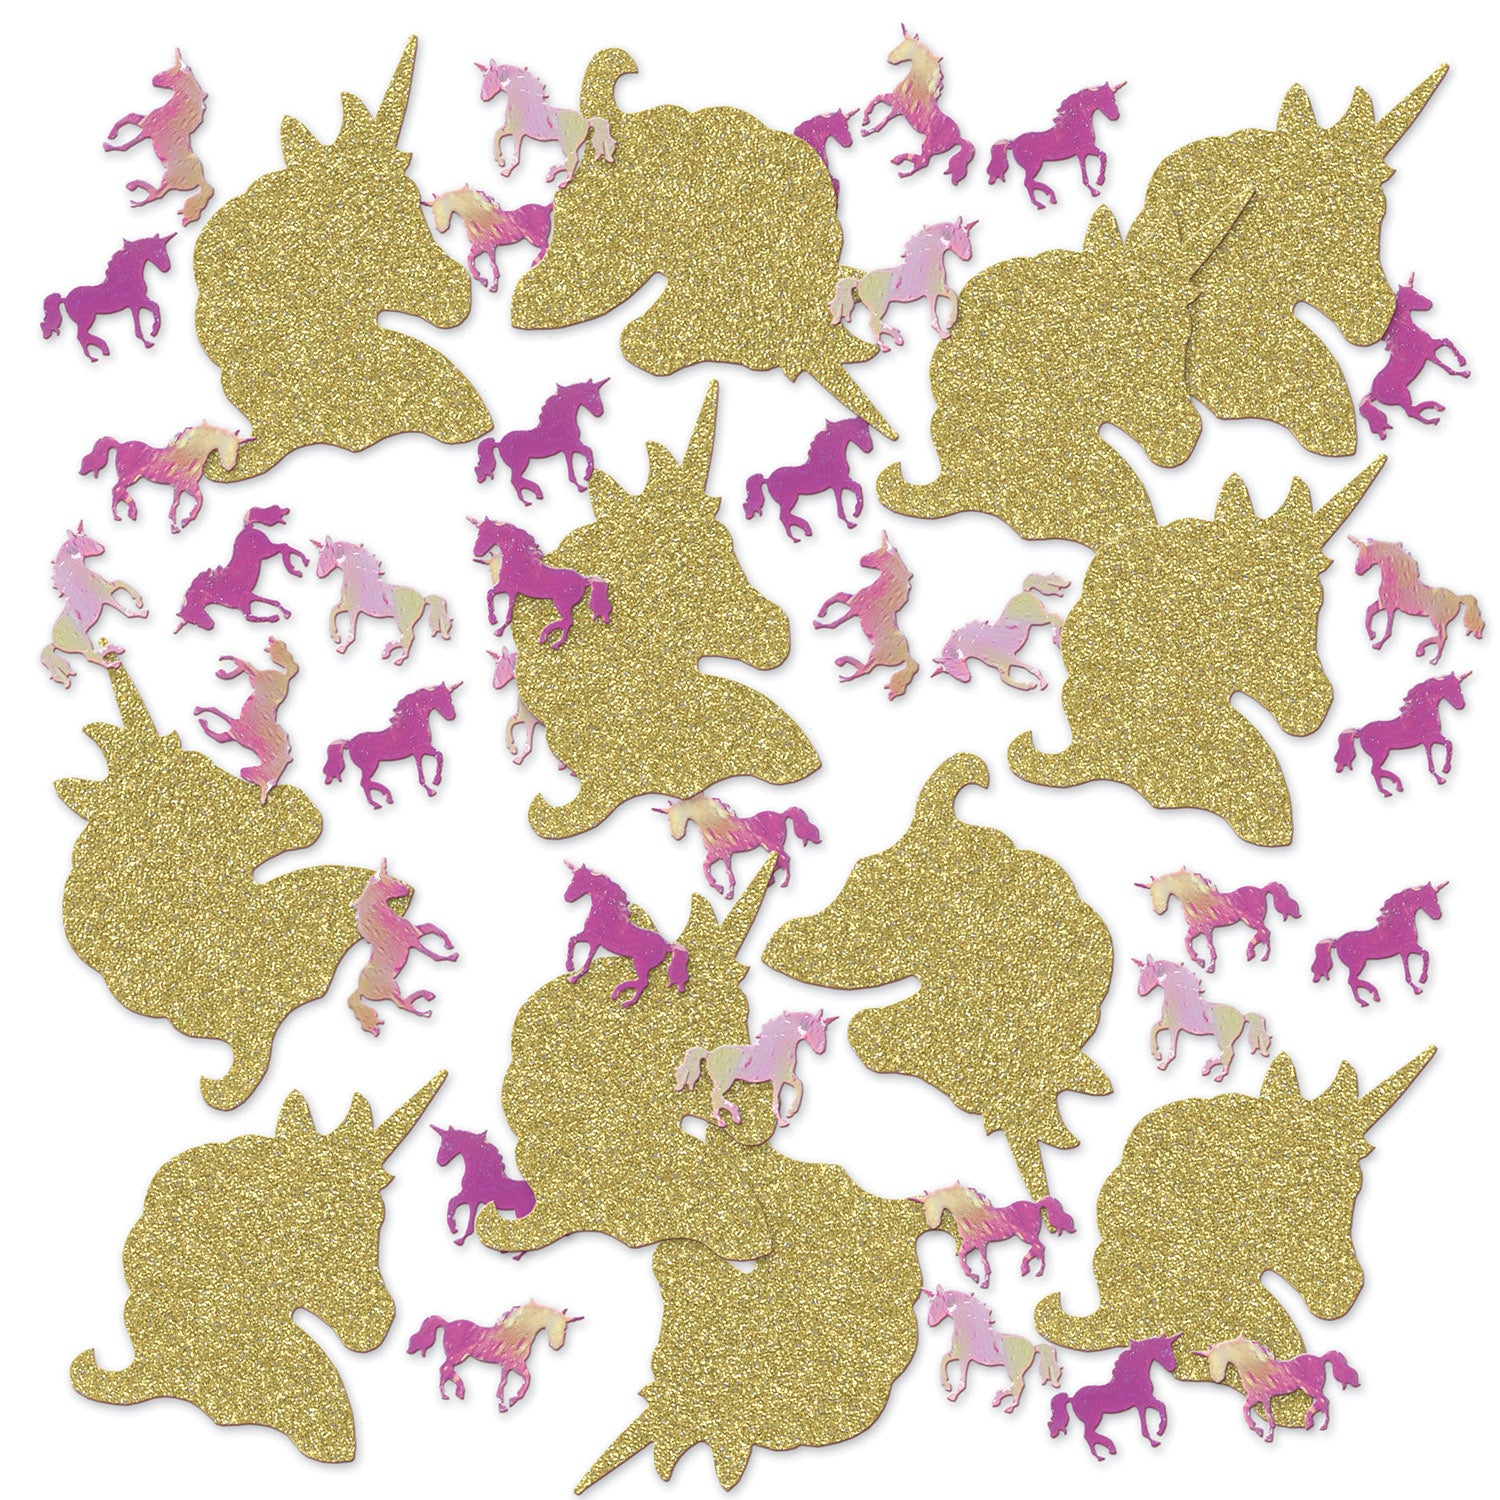 Unicorn Deluxe Sparkle Confetti (2 - .5 Oz Pkgs) by Beistle - Unicorn Theme Decorations